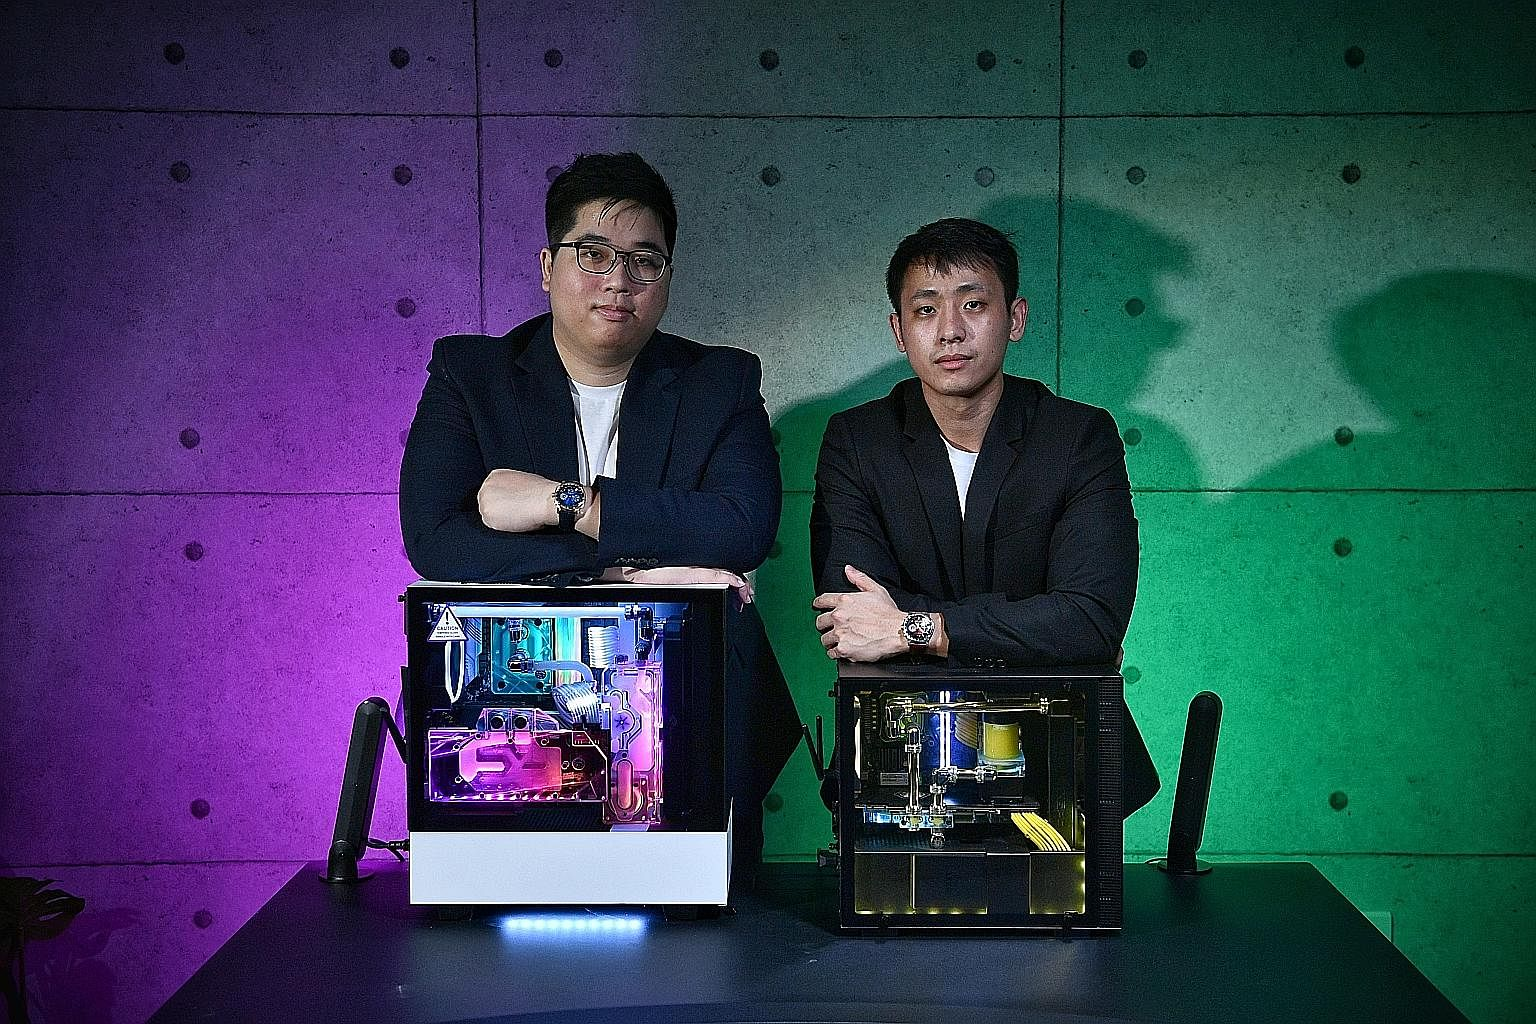 Marcus (right) and Joe (second from left, back) at one of their first IT shows. Aftershock gaming laptops have won a slew of awards from publications and websites, including The Straits Times and Hardware Zone. Fraternal twins Marcus (left) and Joe W